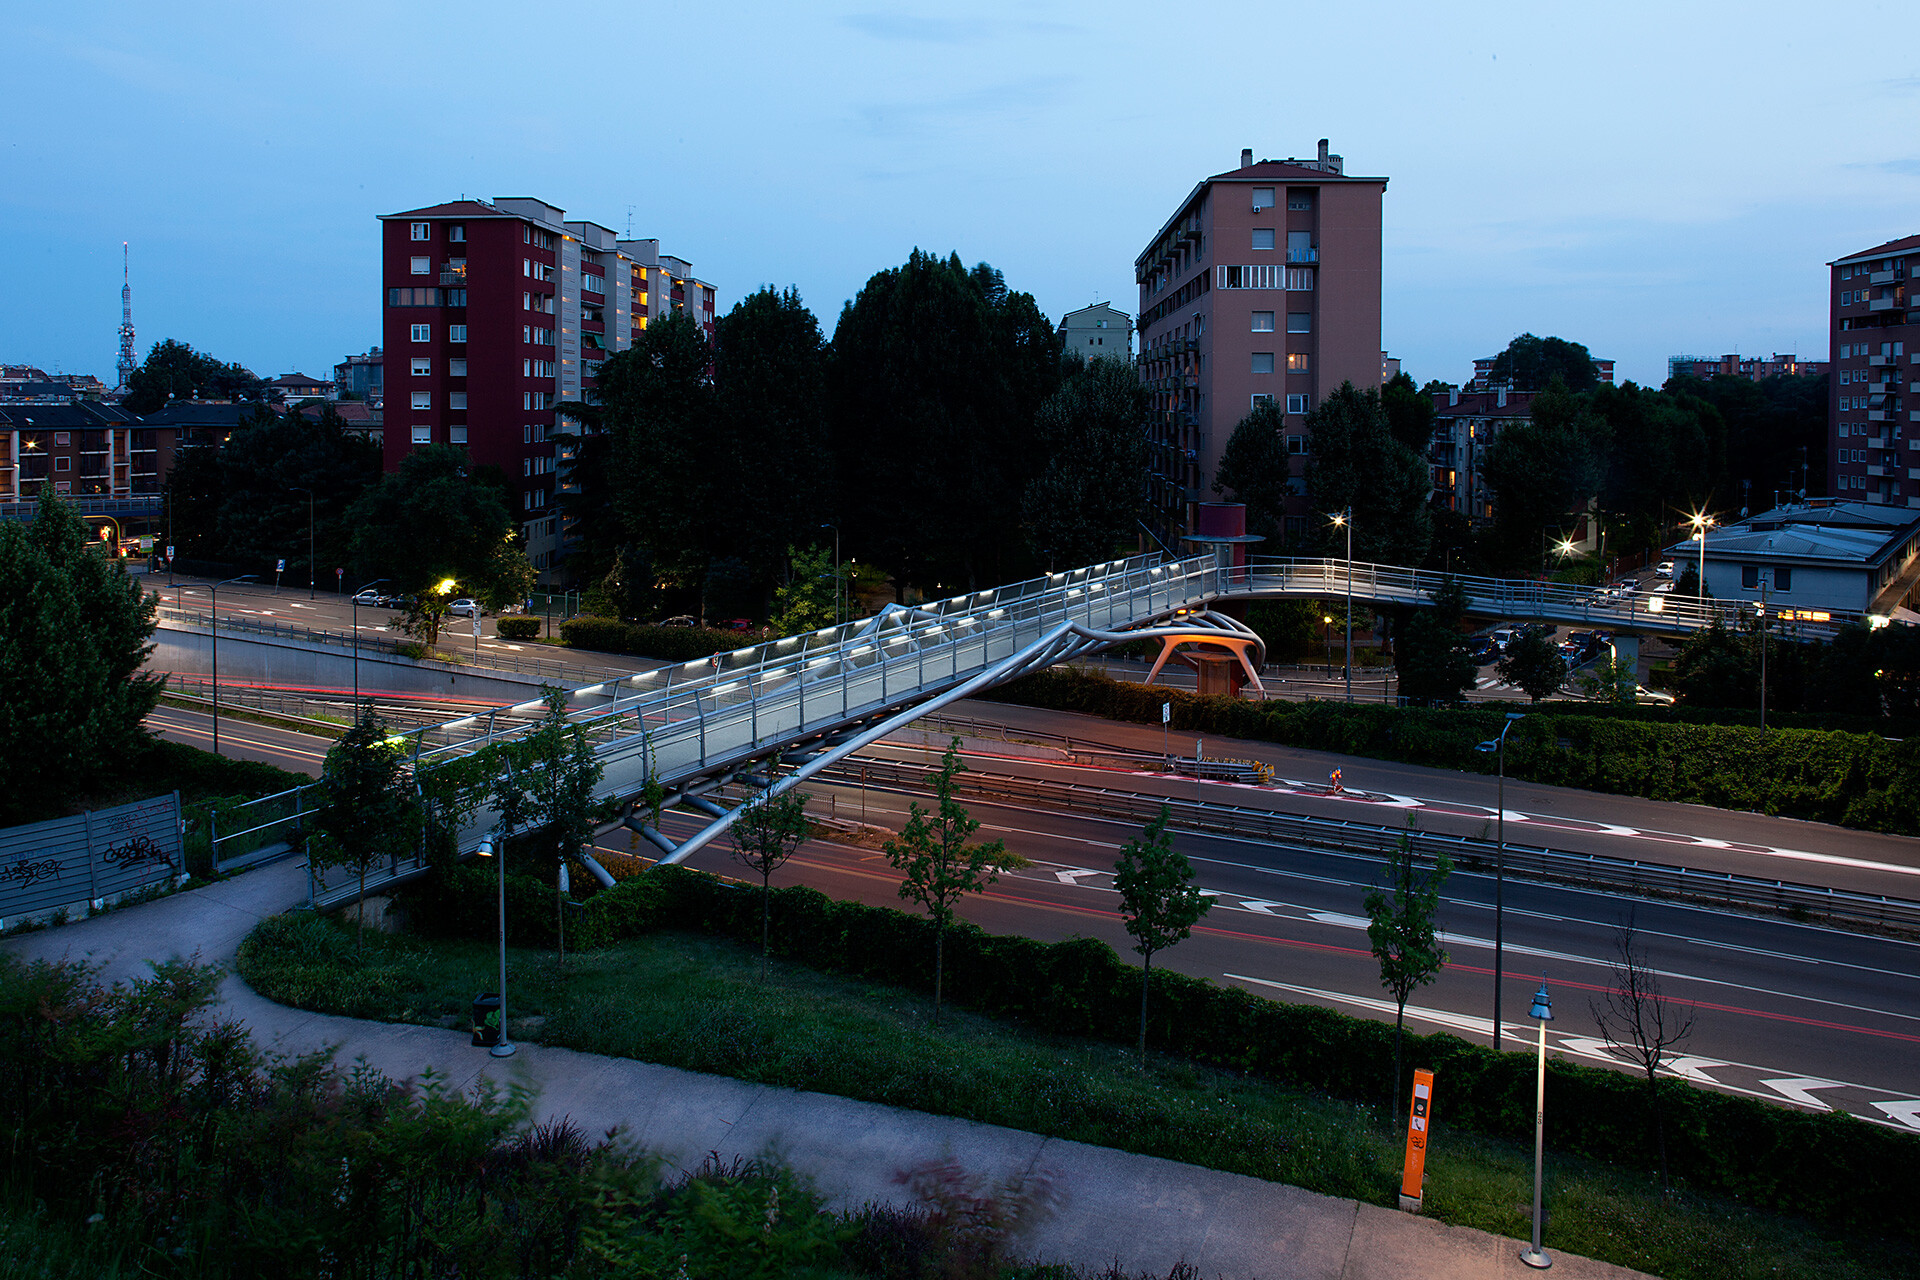 PEDESTRIAN BRIDGE VIA DE GASPERI - PORTELLO 7